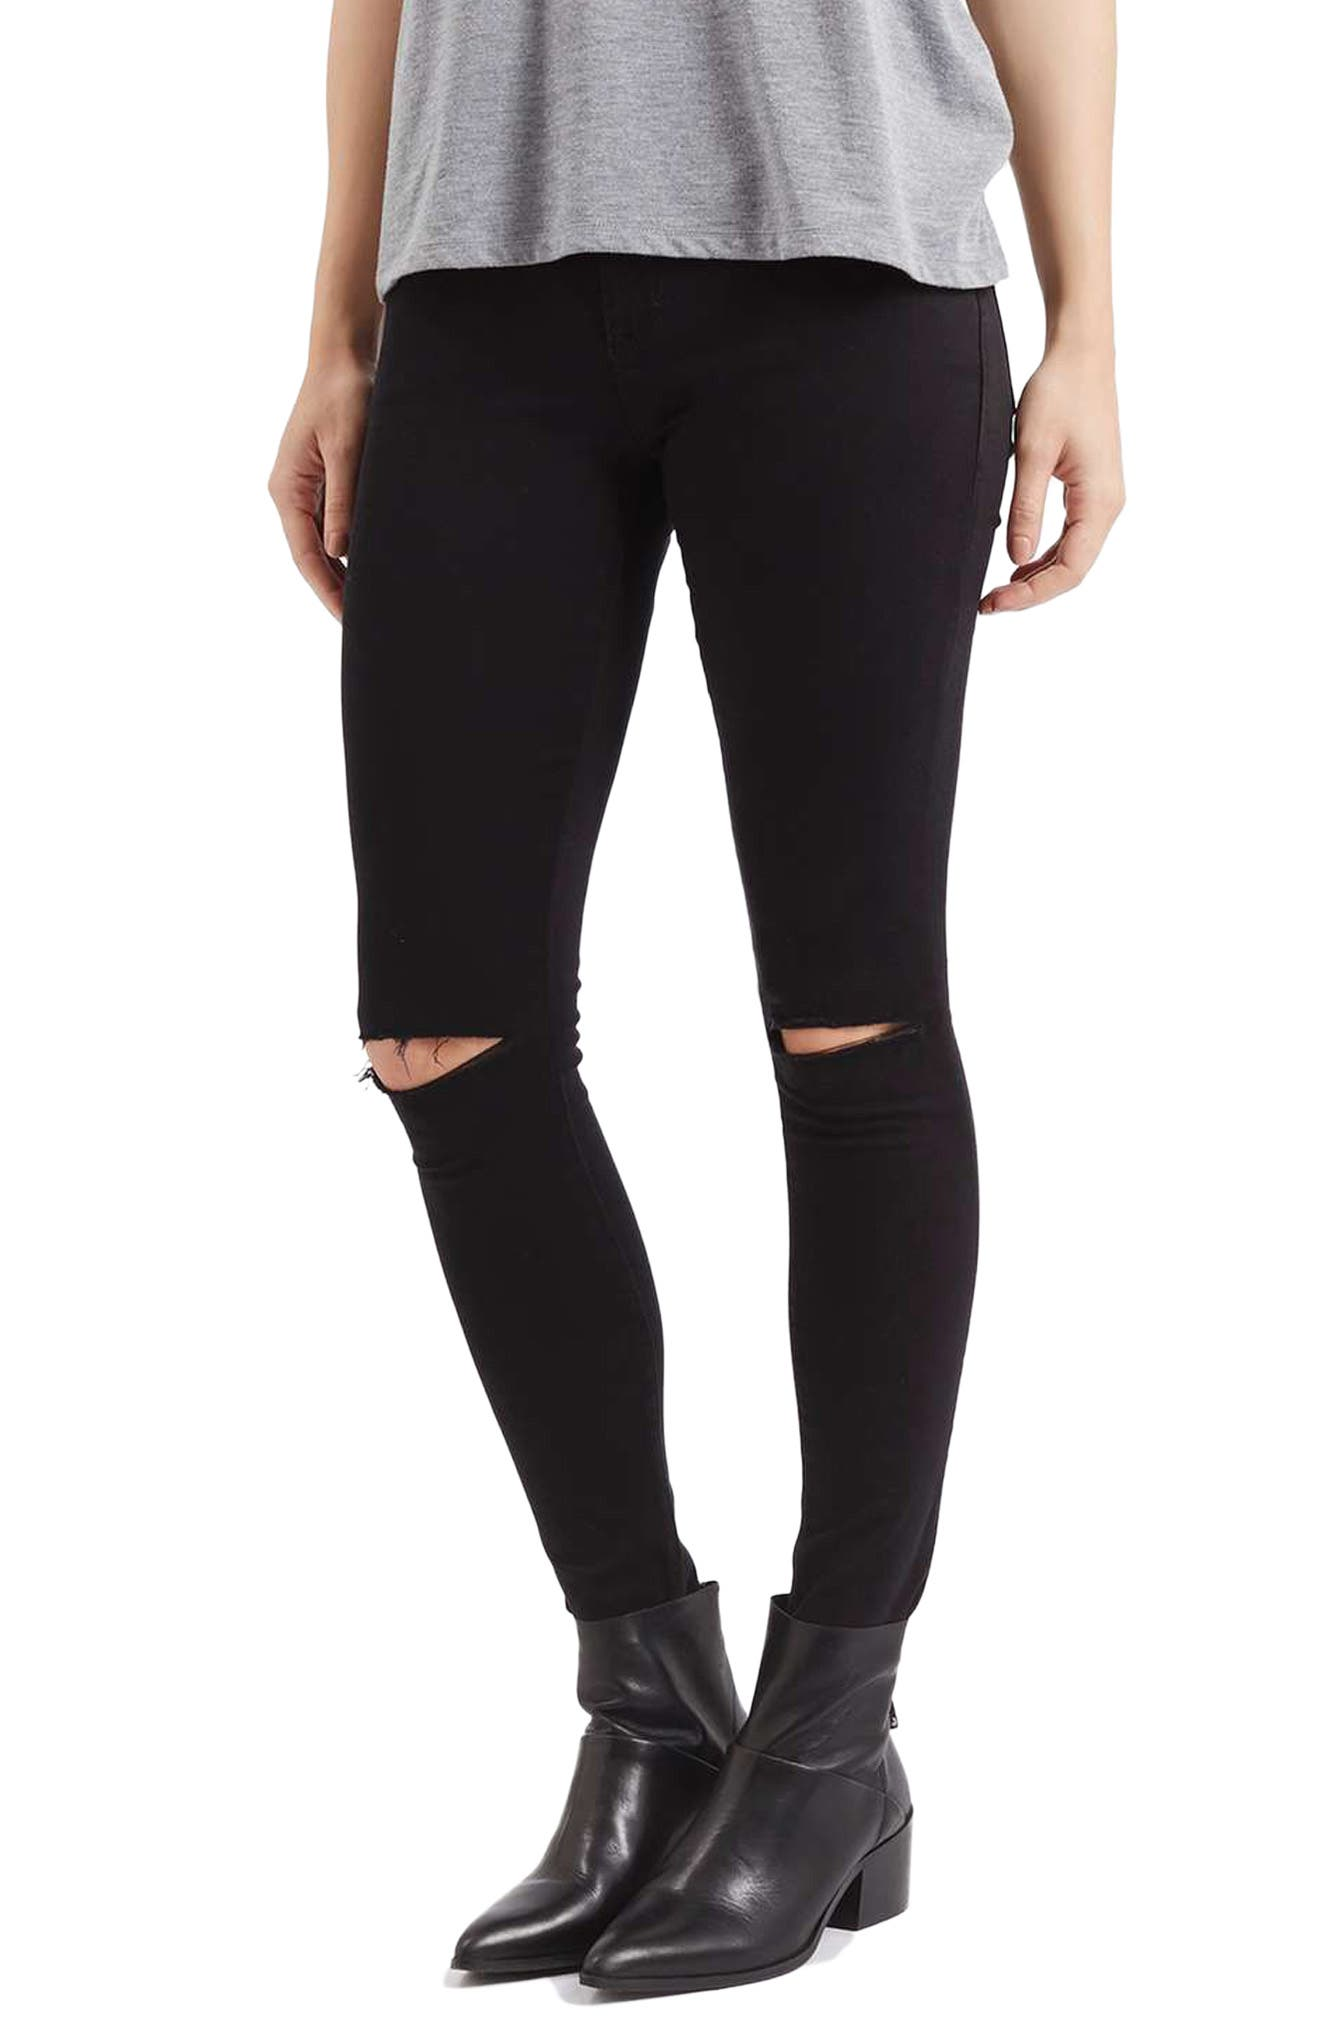 TOPSHOP, Moto Leigh Ripped Skinny Jeans, Main thumbnail 1, color, 001